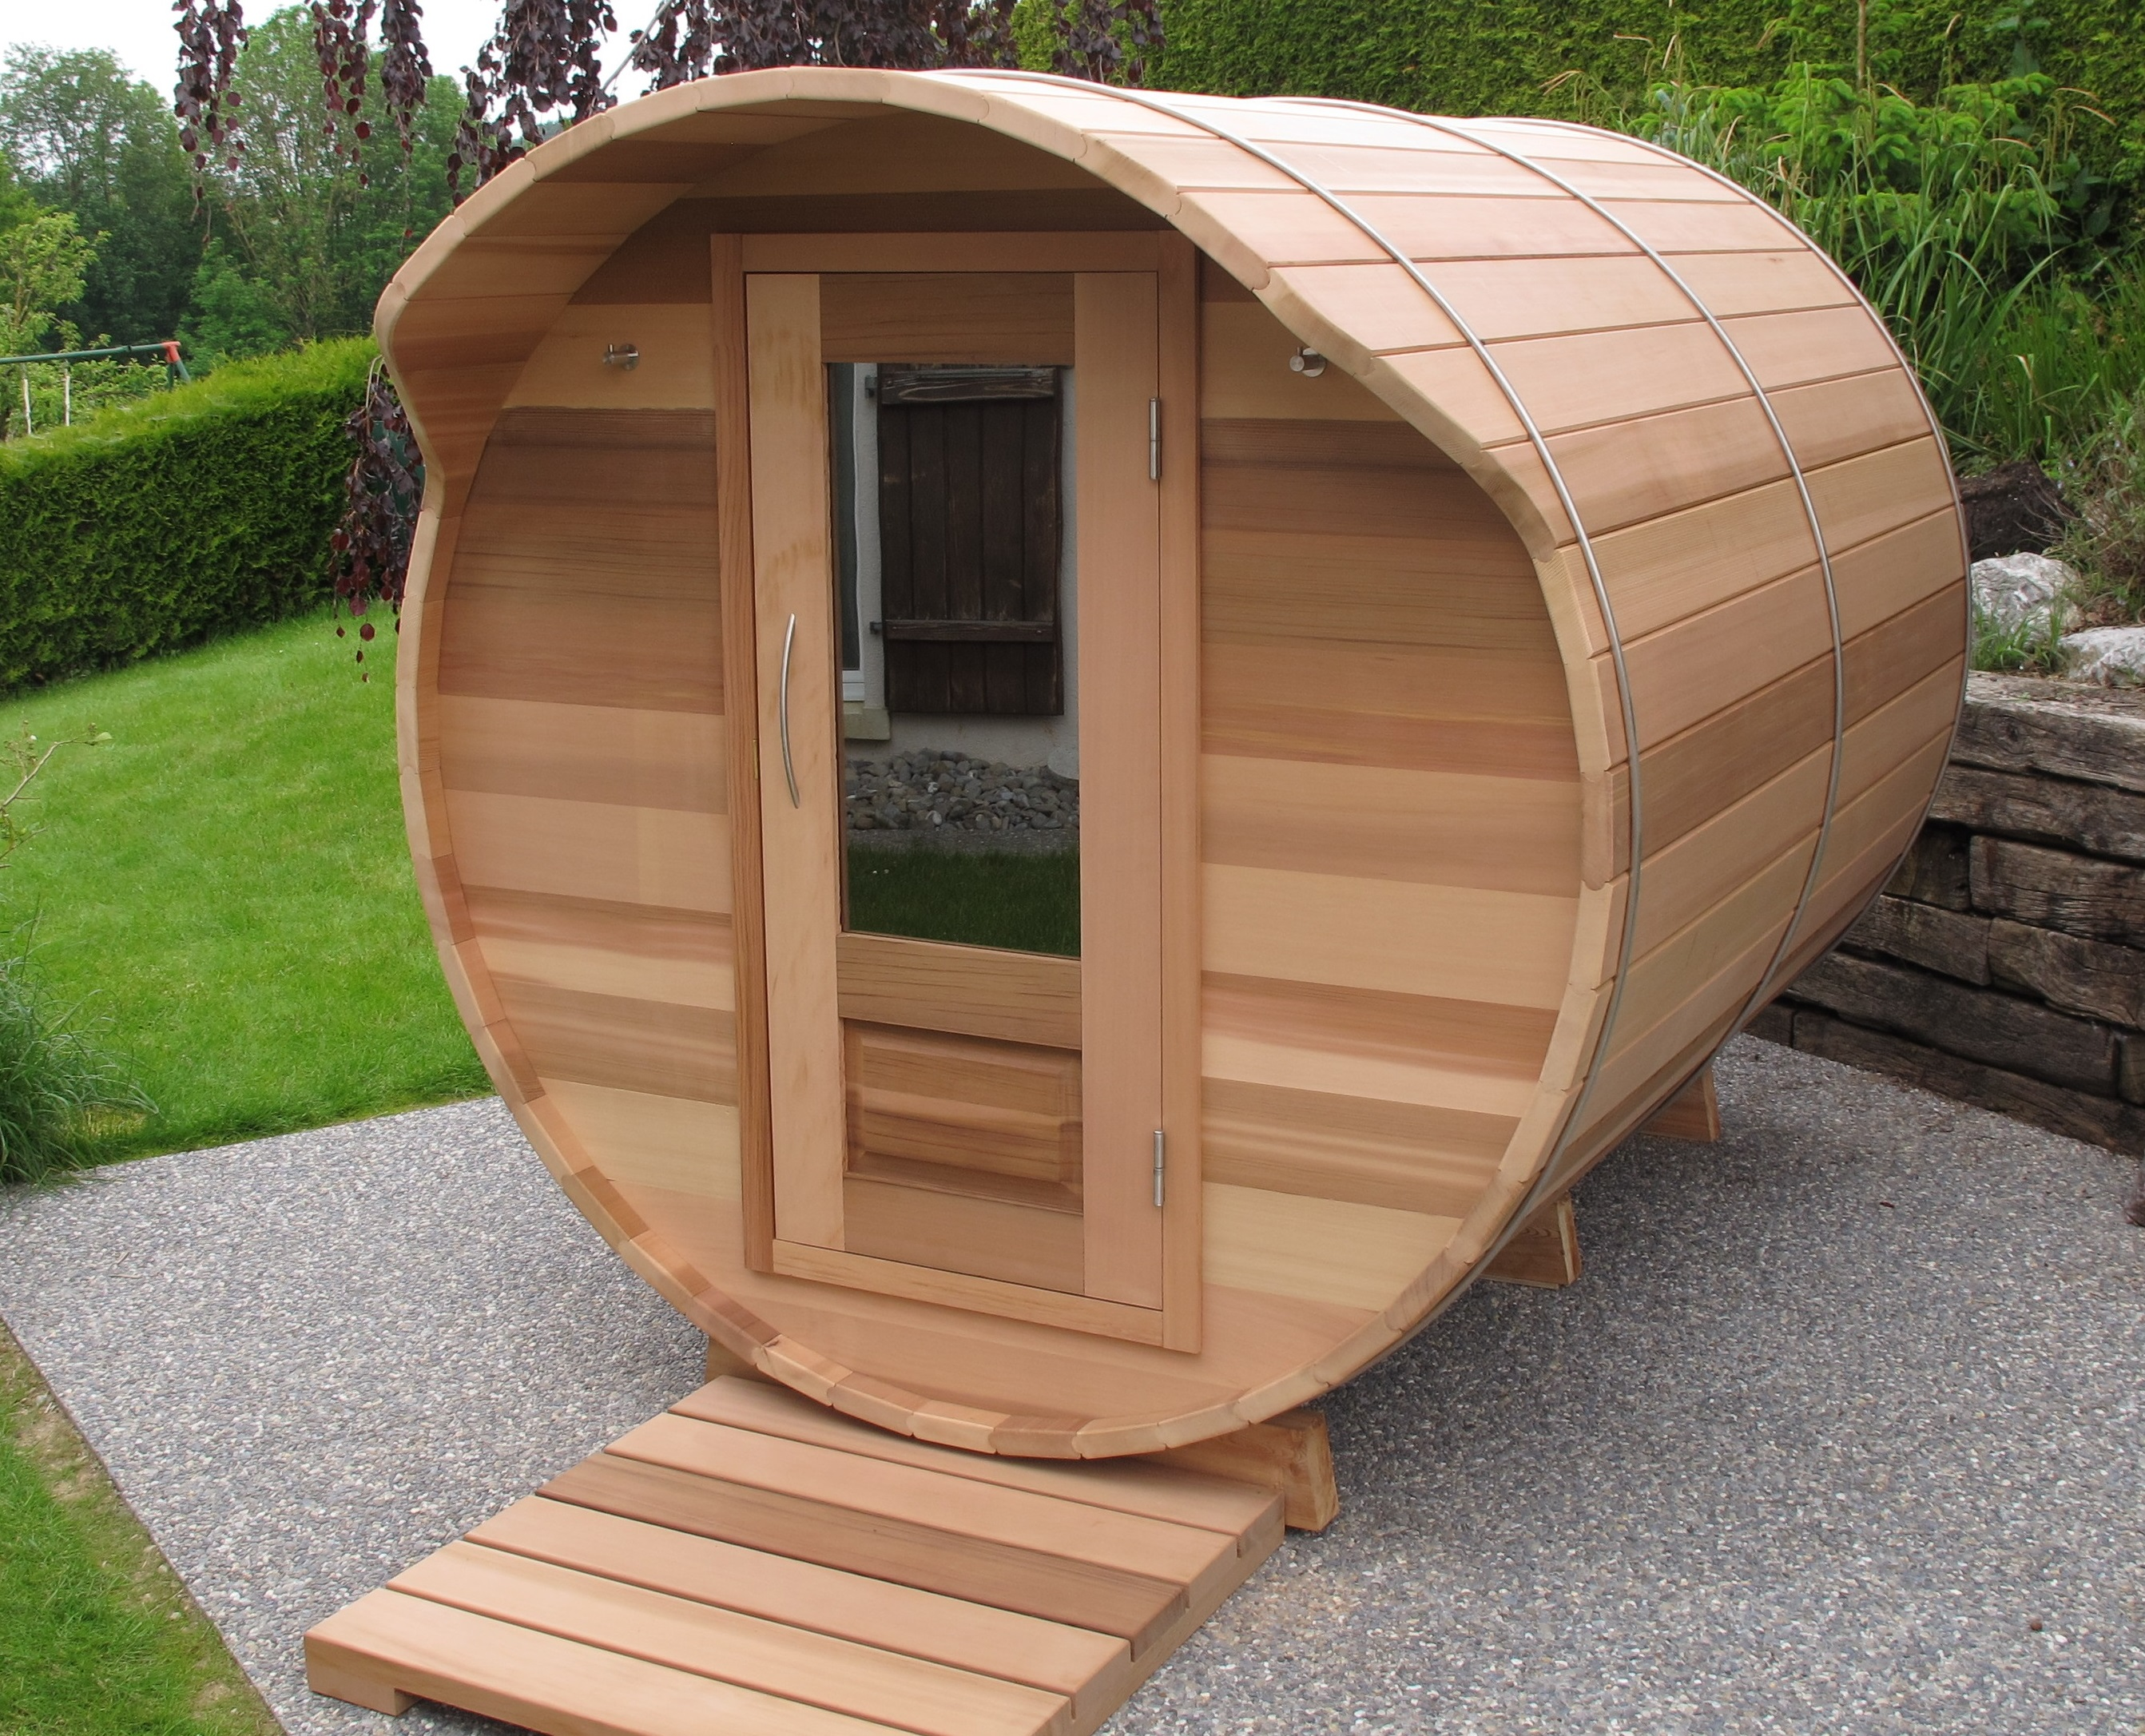 Equali spa nature d 39 ext rieur for Sauna d exterieur